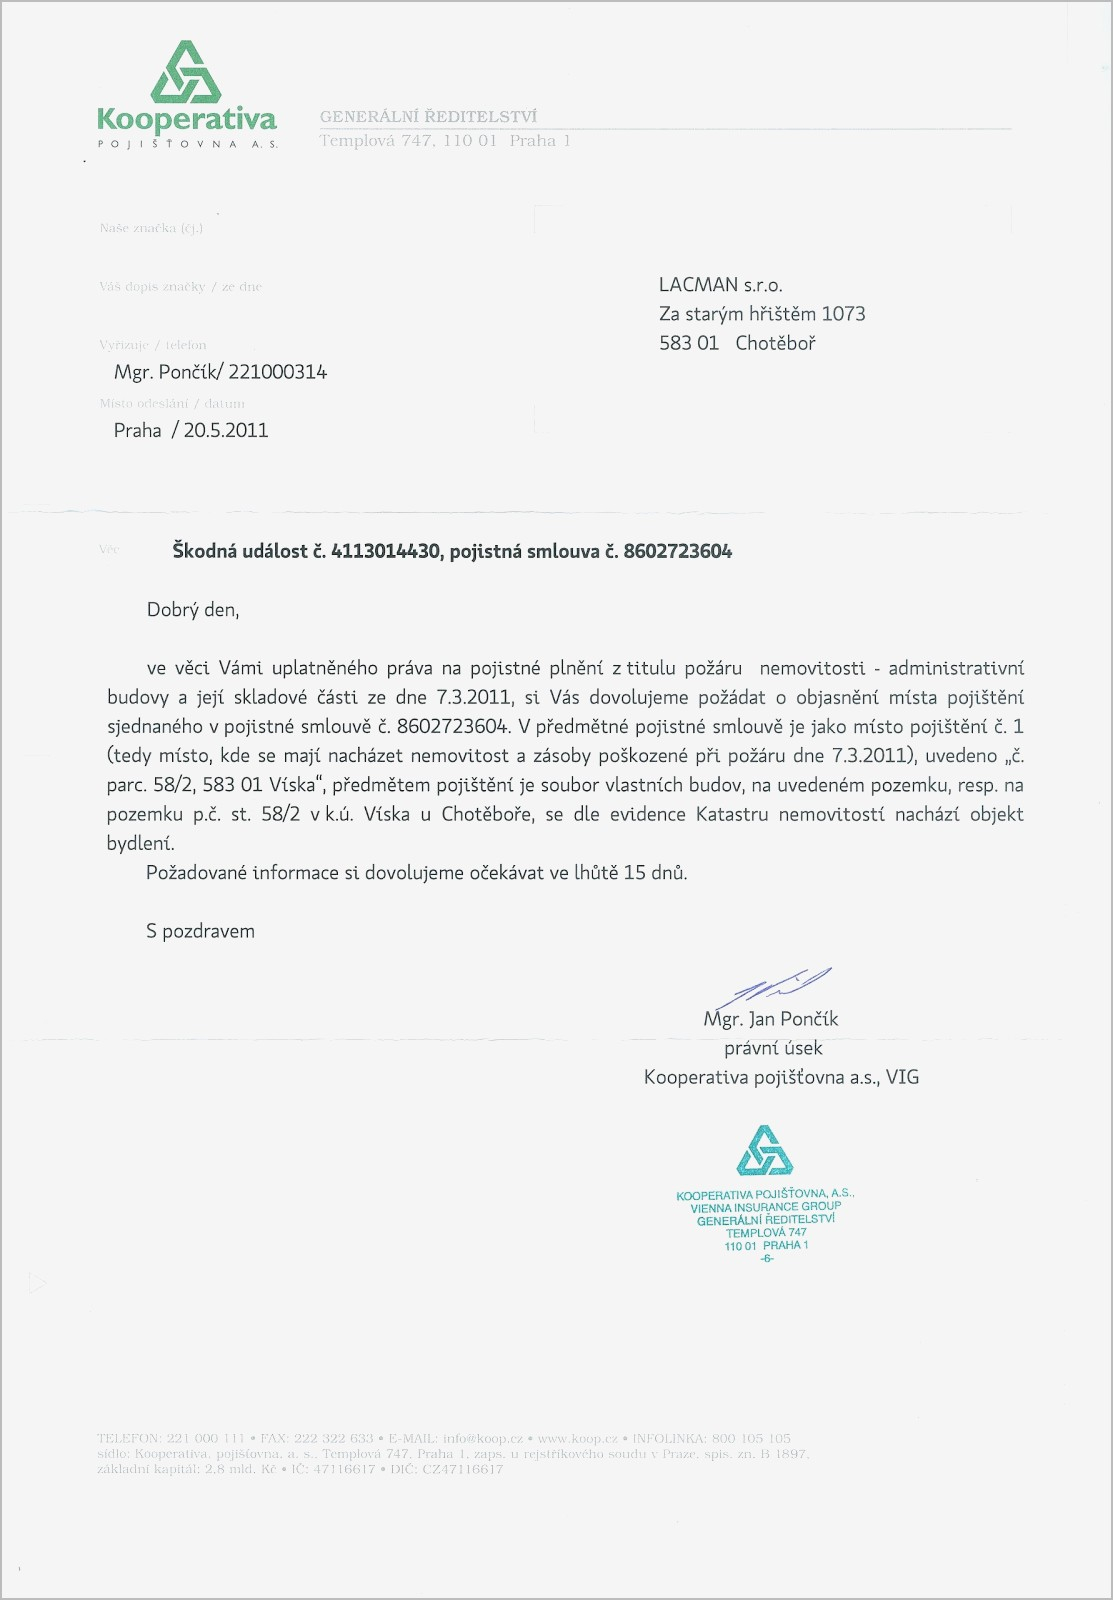 car accident settlement letter template Collection-Car Accident Settlement Agreement Beautiful Excellent Free Car Accident Report S Electrical System Block Ideas 6-a